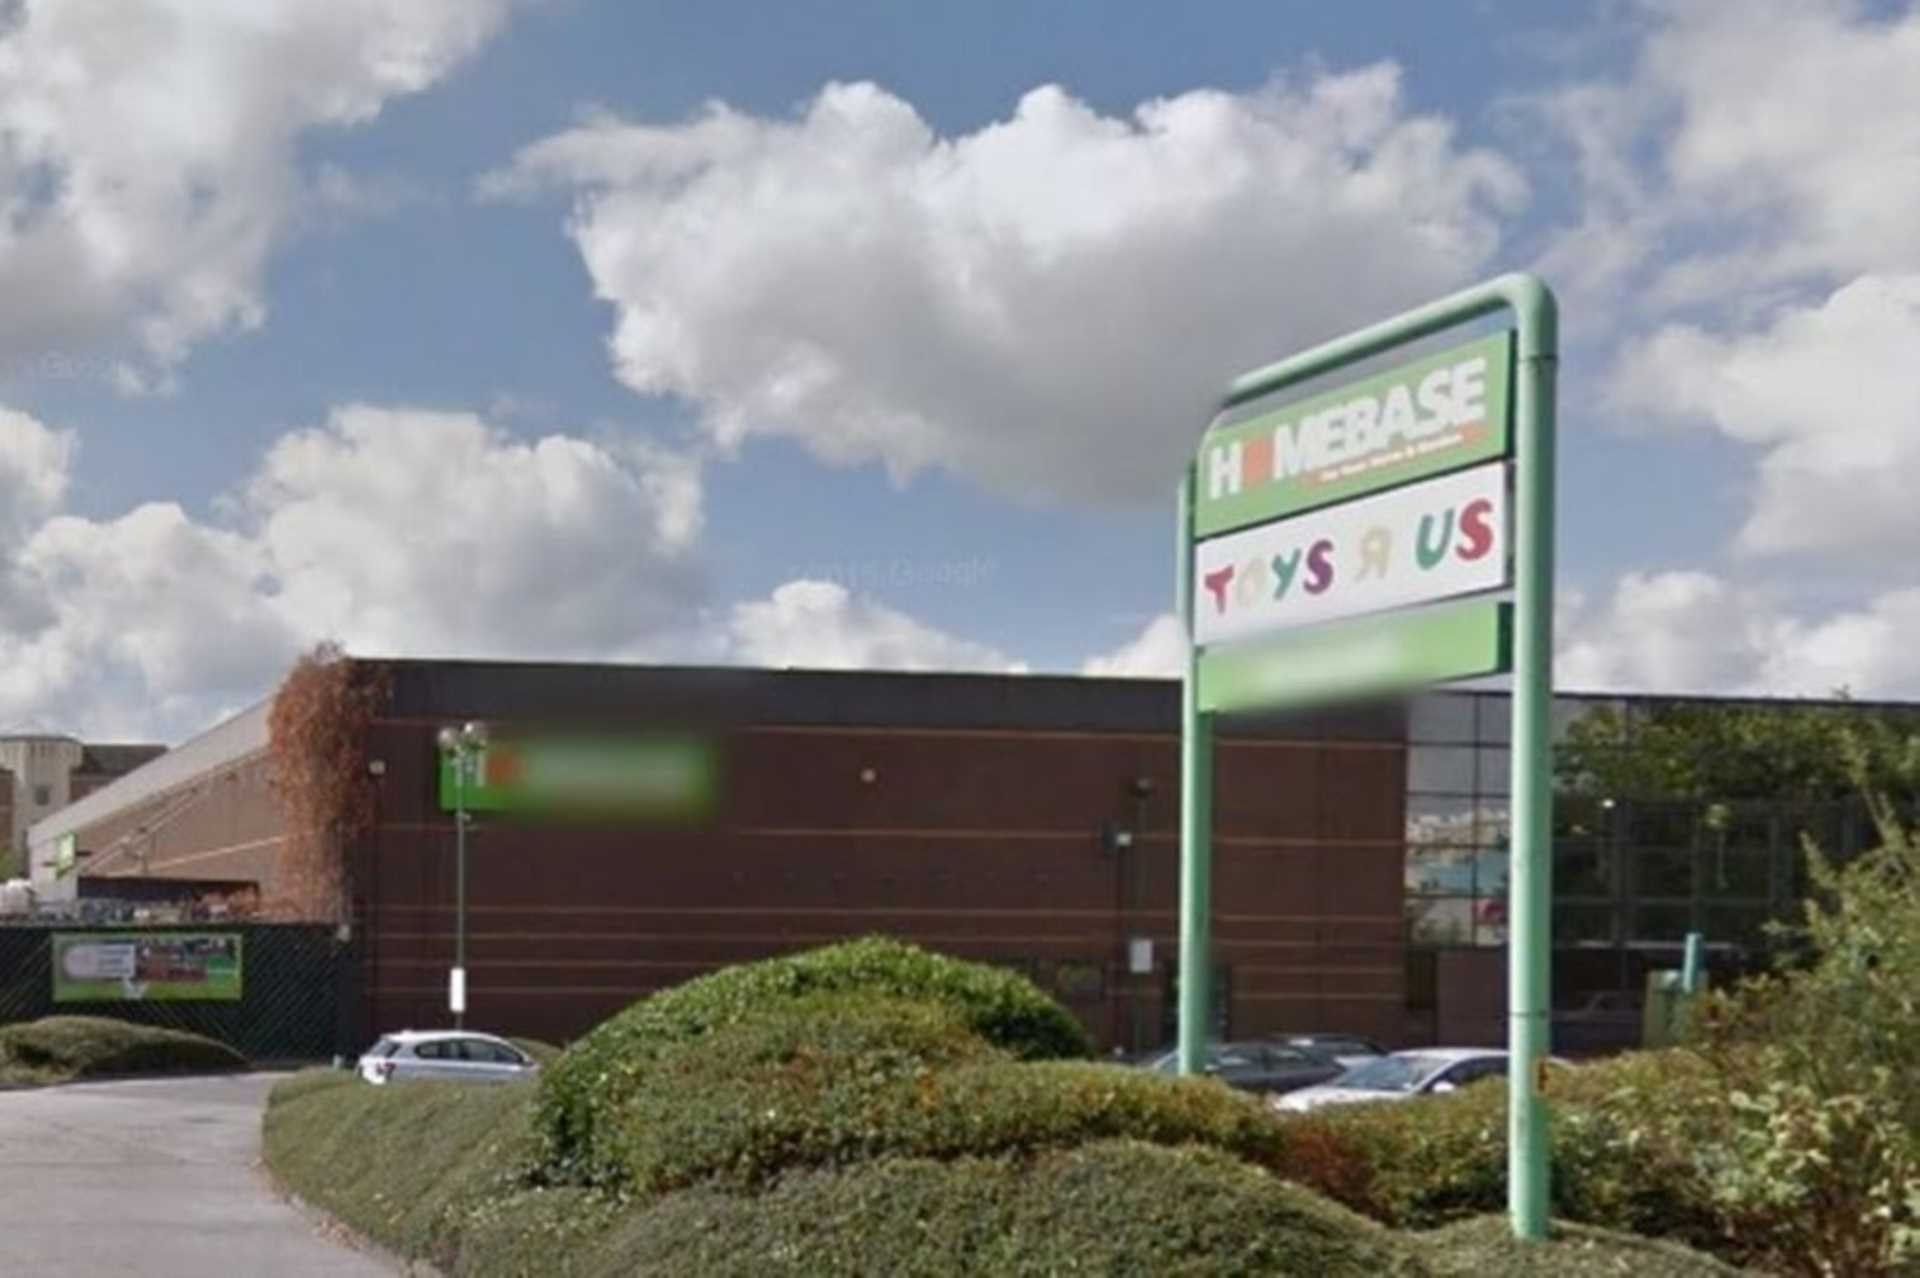 765 homes plan for Reading Homebase and former Toys R Us site could be approved